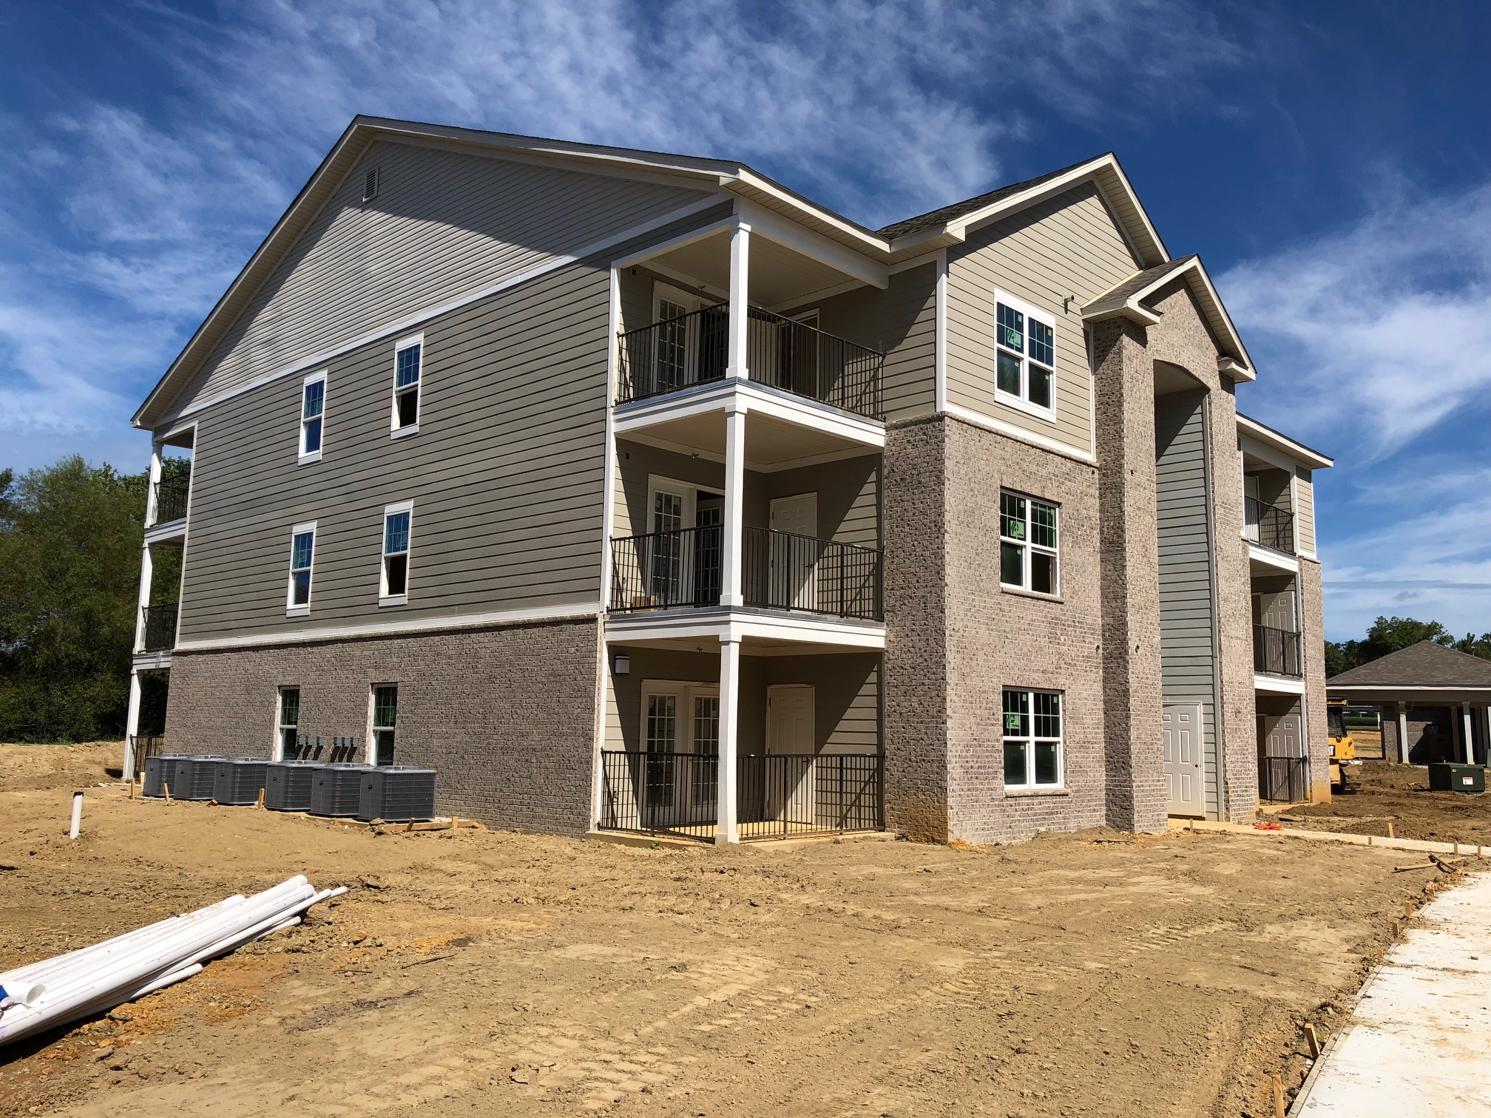 Image of Rivers Edge Apartments in Hartselle, Alabama